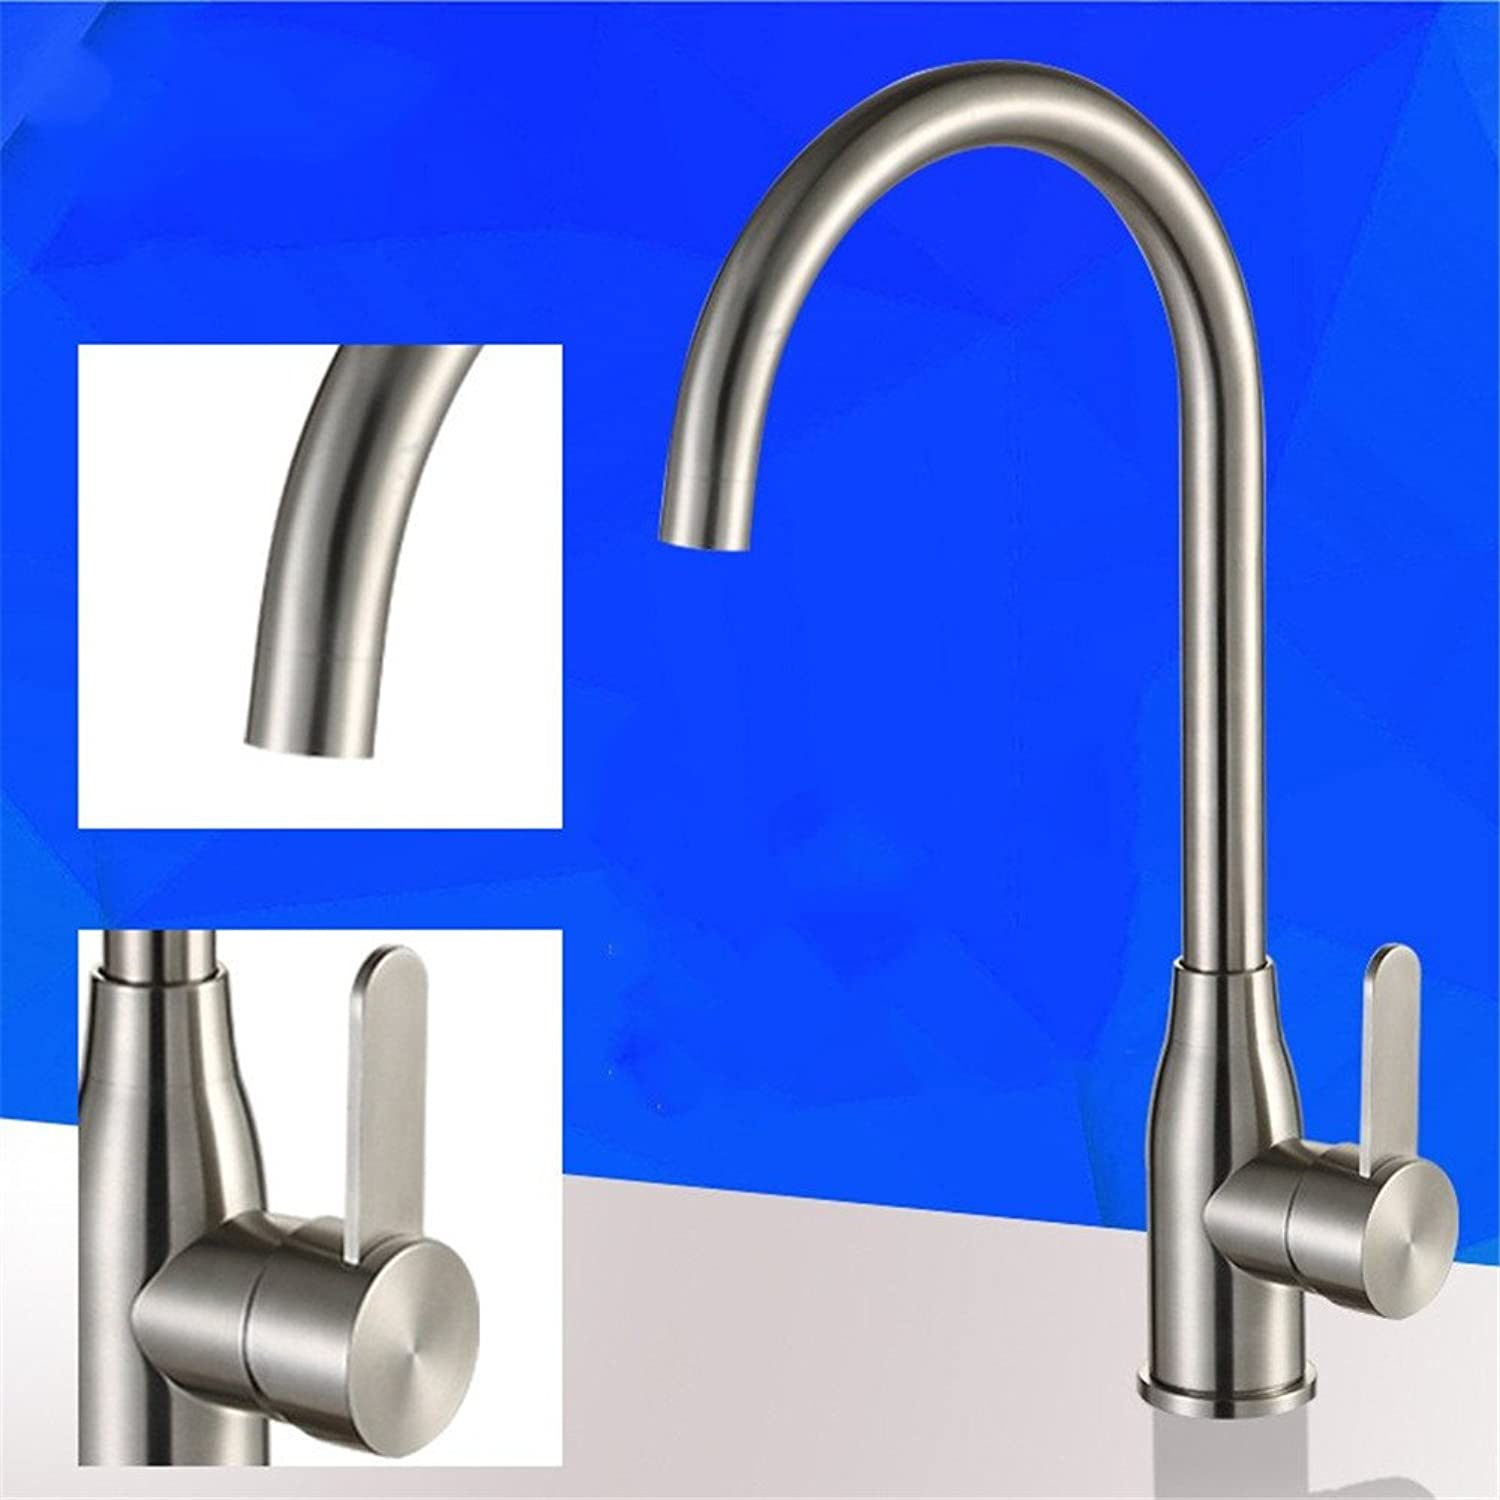 Gyps Faucet Basin Mixer Tap Waterfall Faucet Antique Bathroom 304 Stainless Steel kitchen faucet hot and cold-water dish basin mixer 360 redation Bathroom Tub Lever Faucet